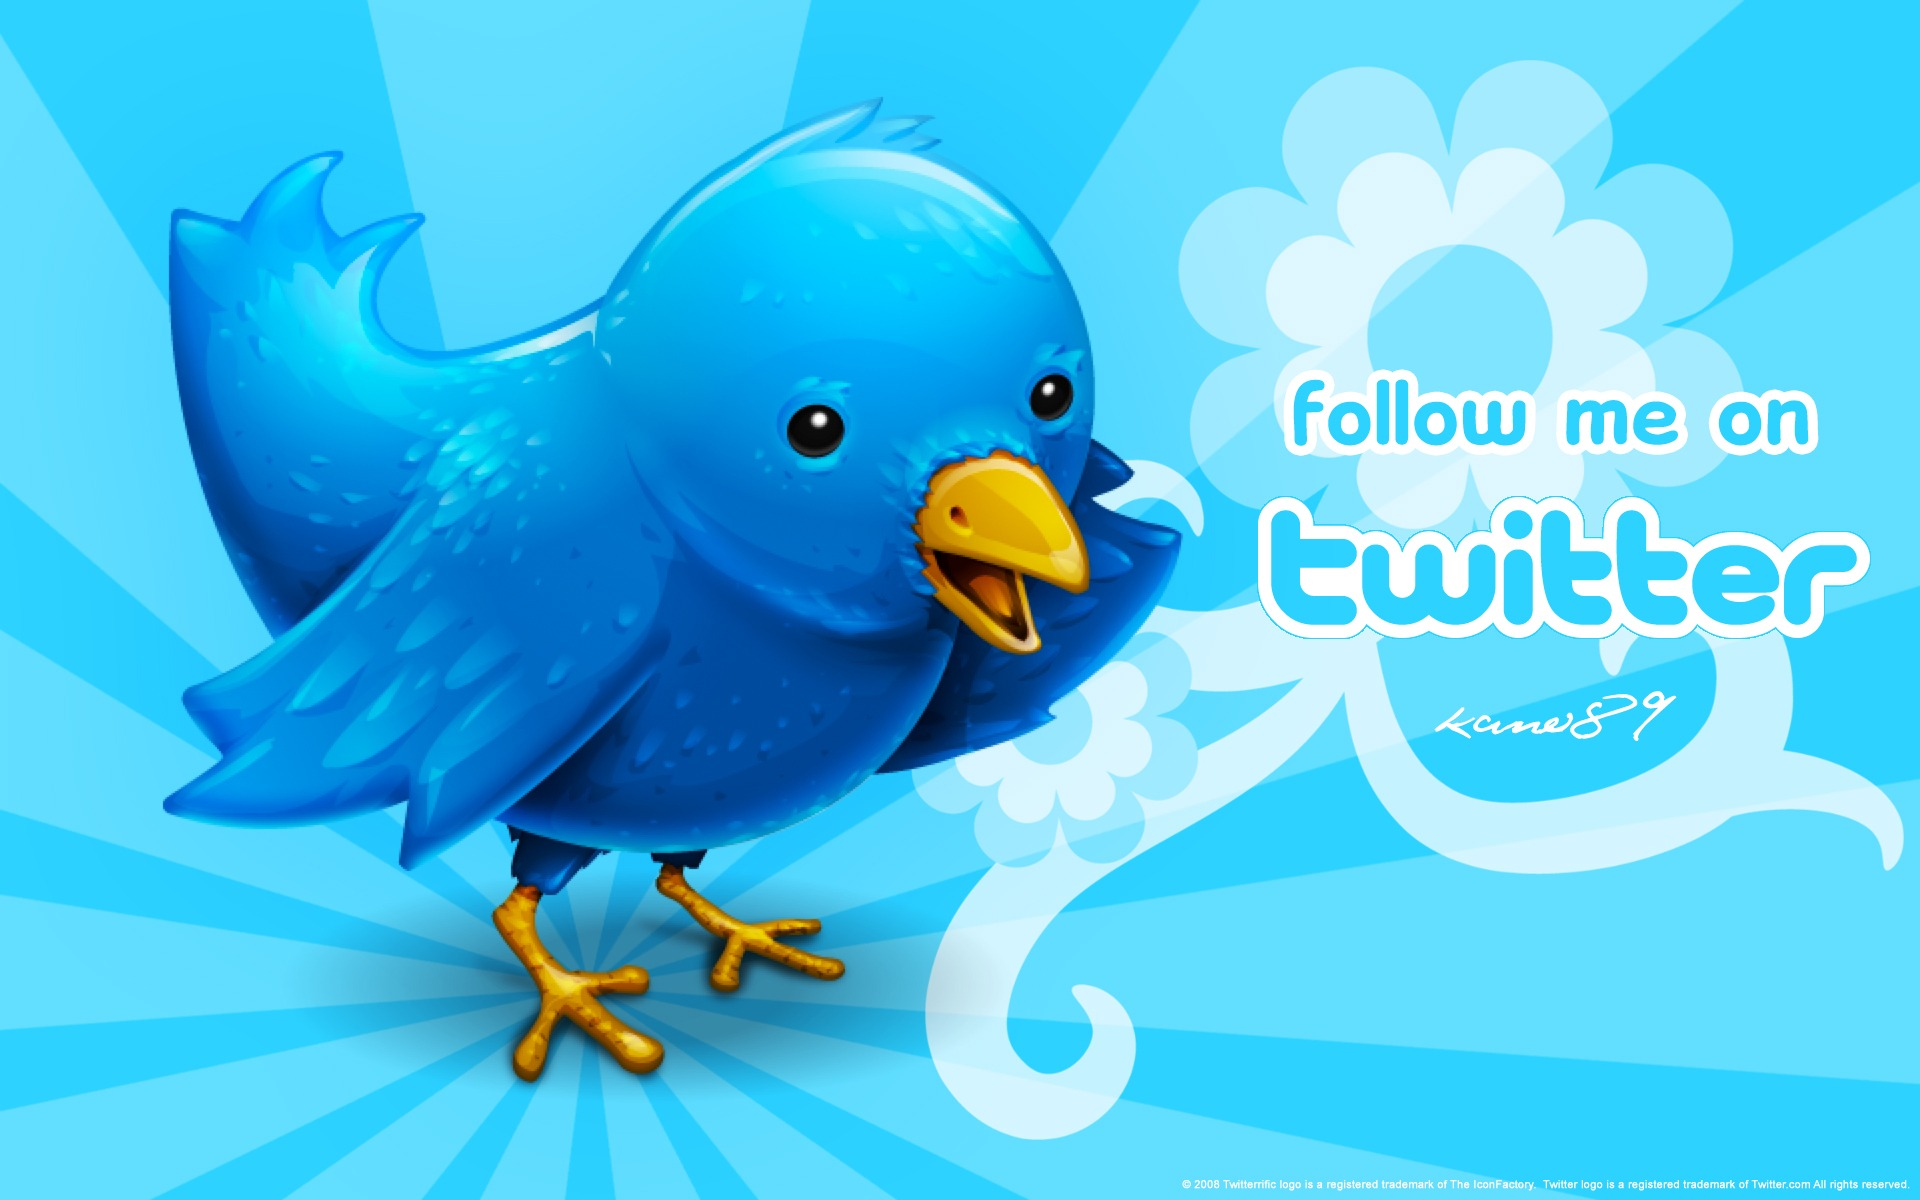 can you 30,000+ twitter followers in your account 48 hours